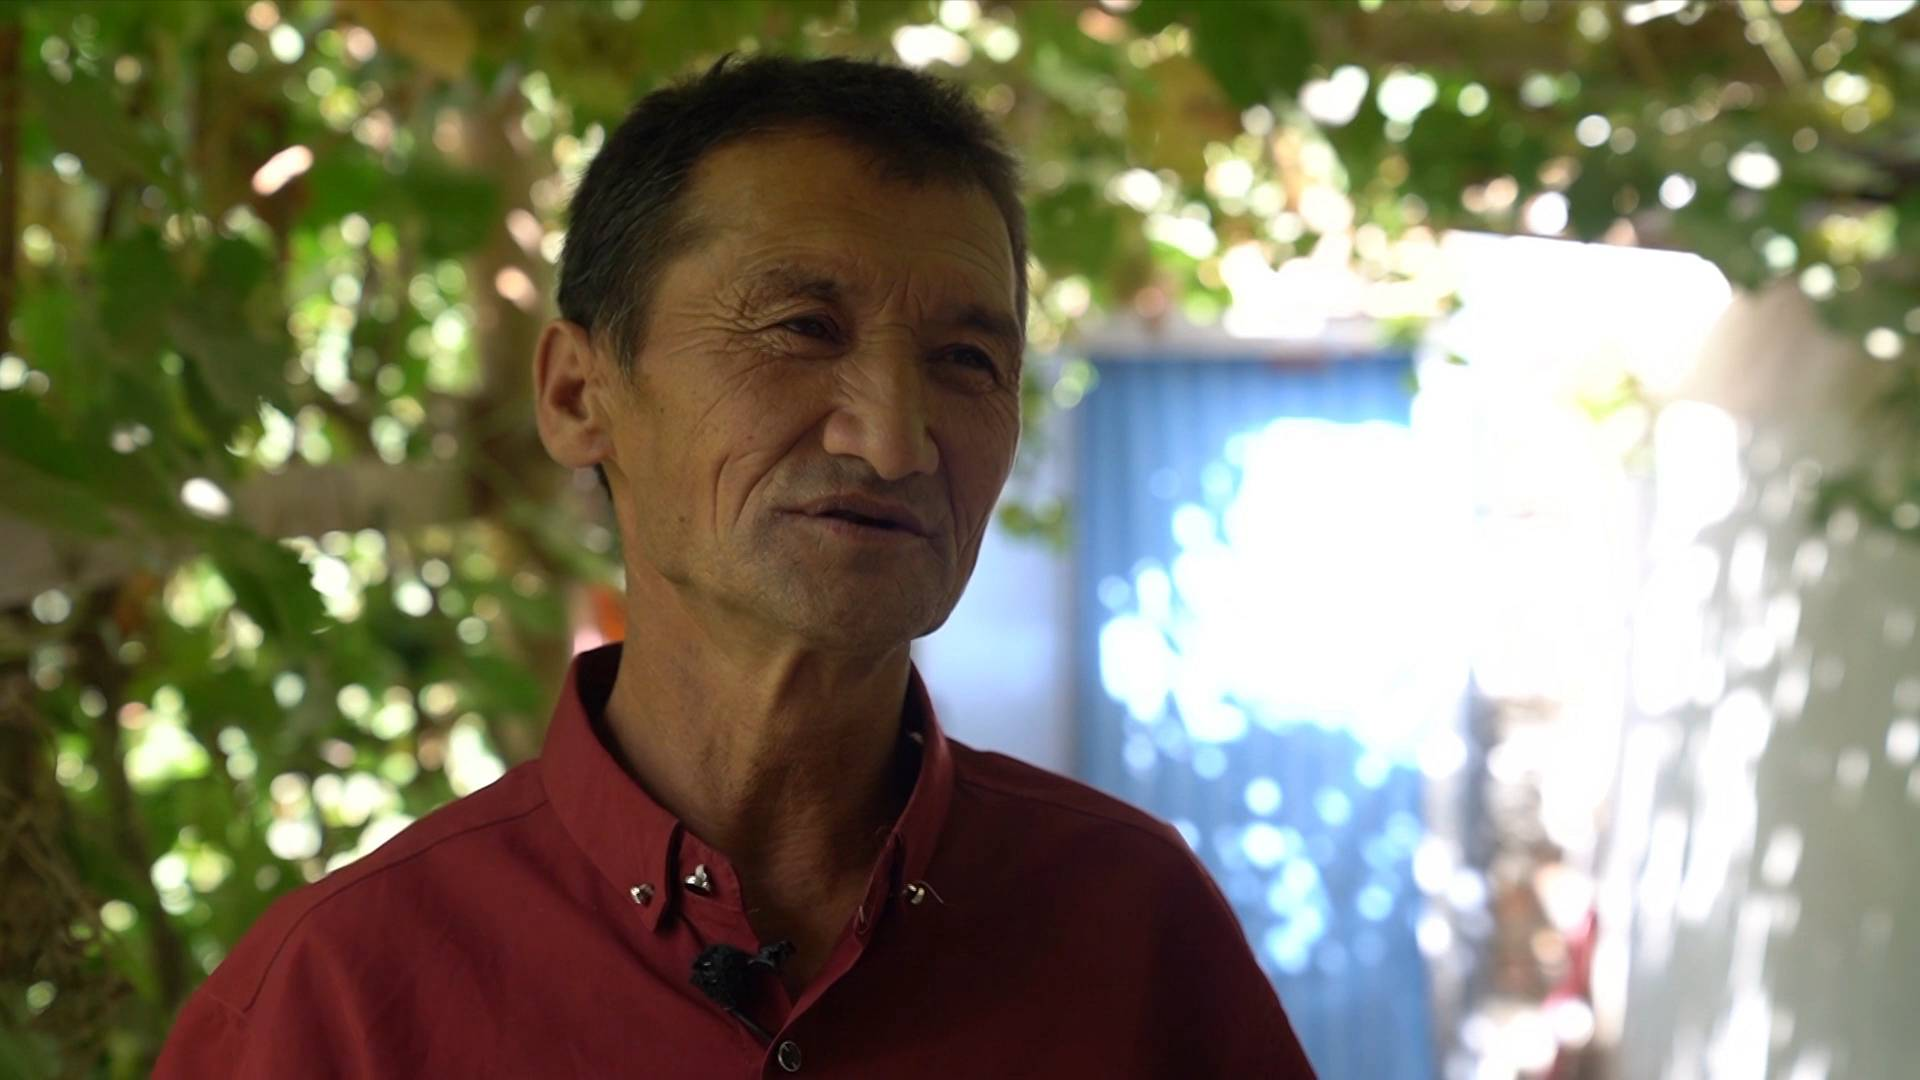 Relocation project helps herdsman out of poverty in China's Xinjiang